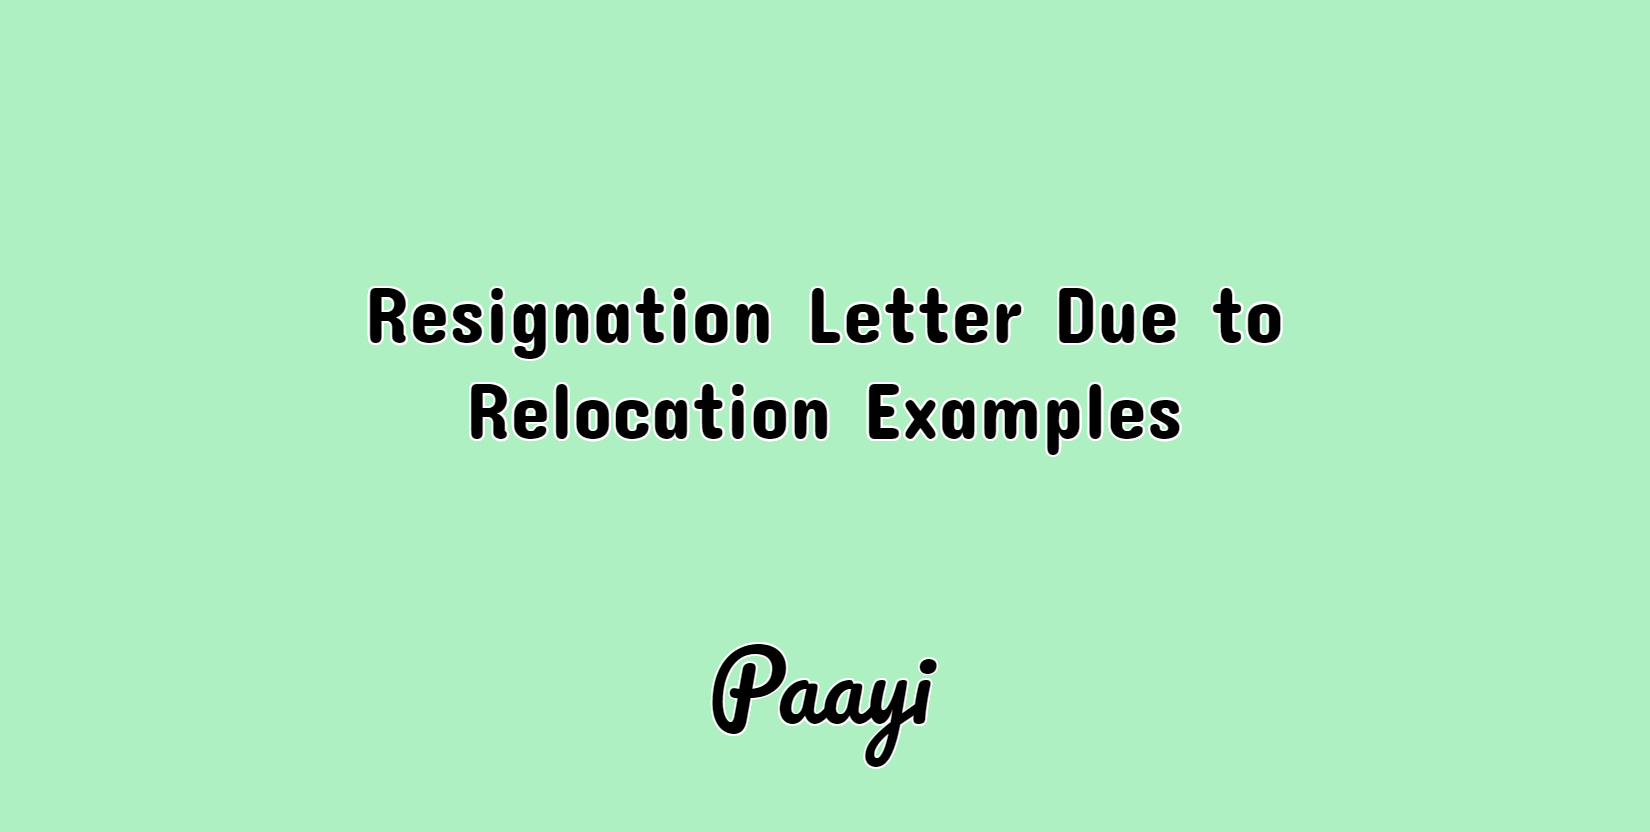 Resignation Letter Due To Relocation Examples Career Help Paayi